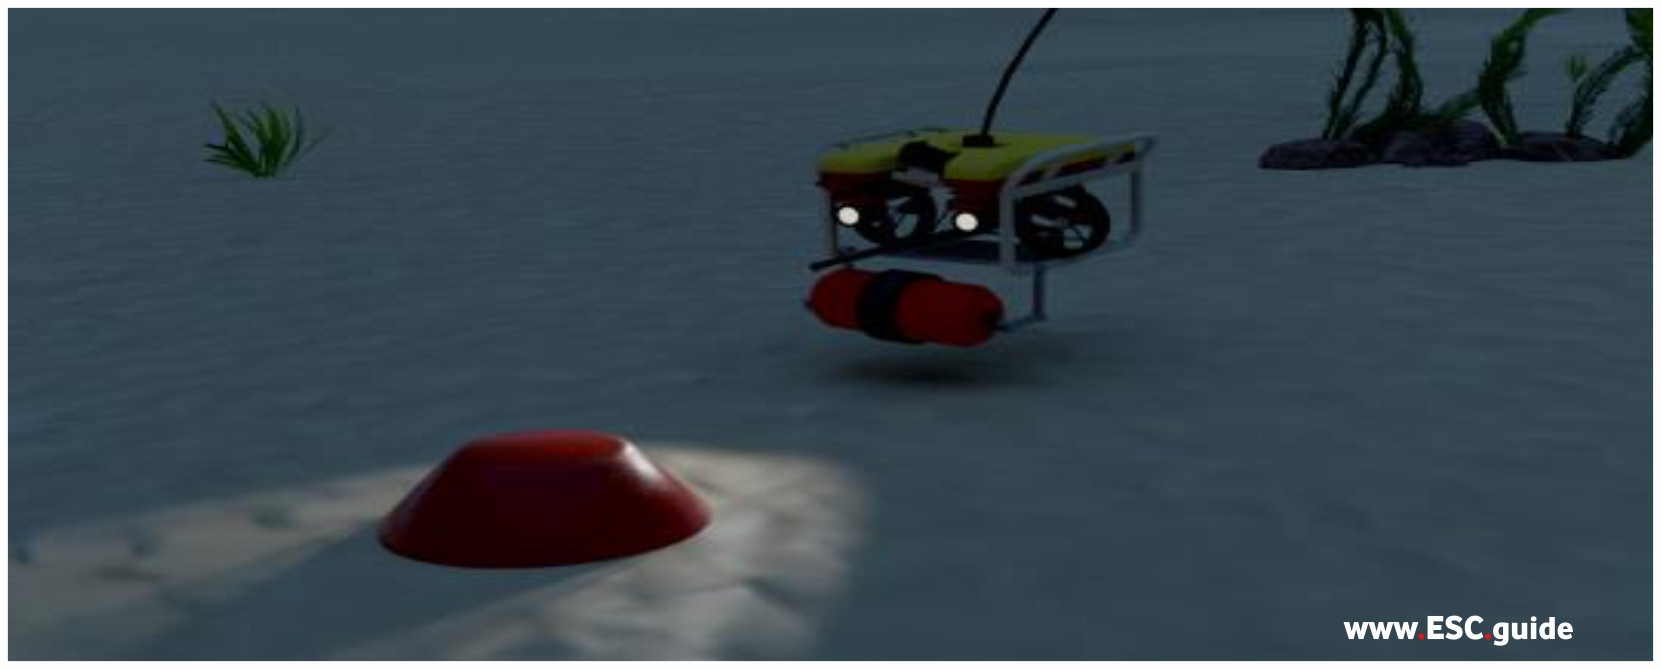 Once identified, launches ROV to set charge. Charge is set.